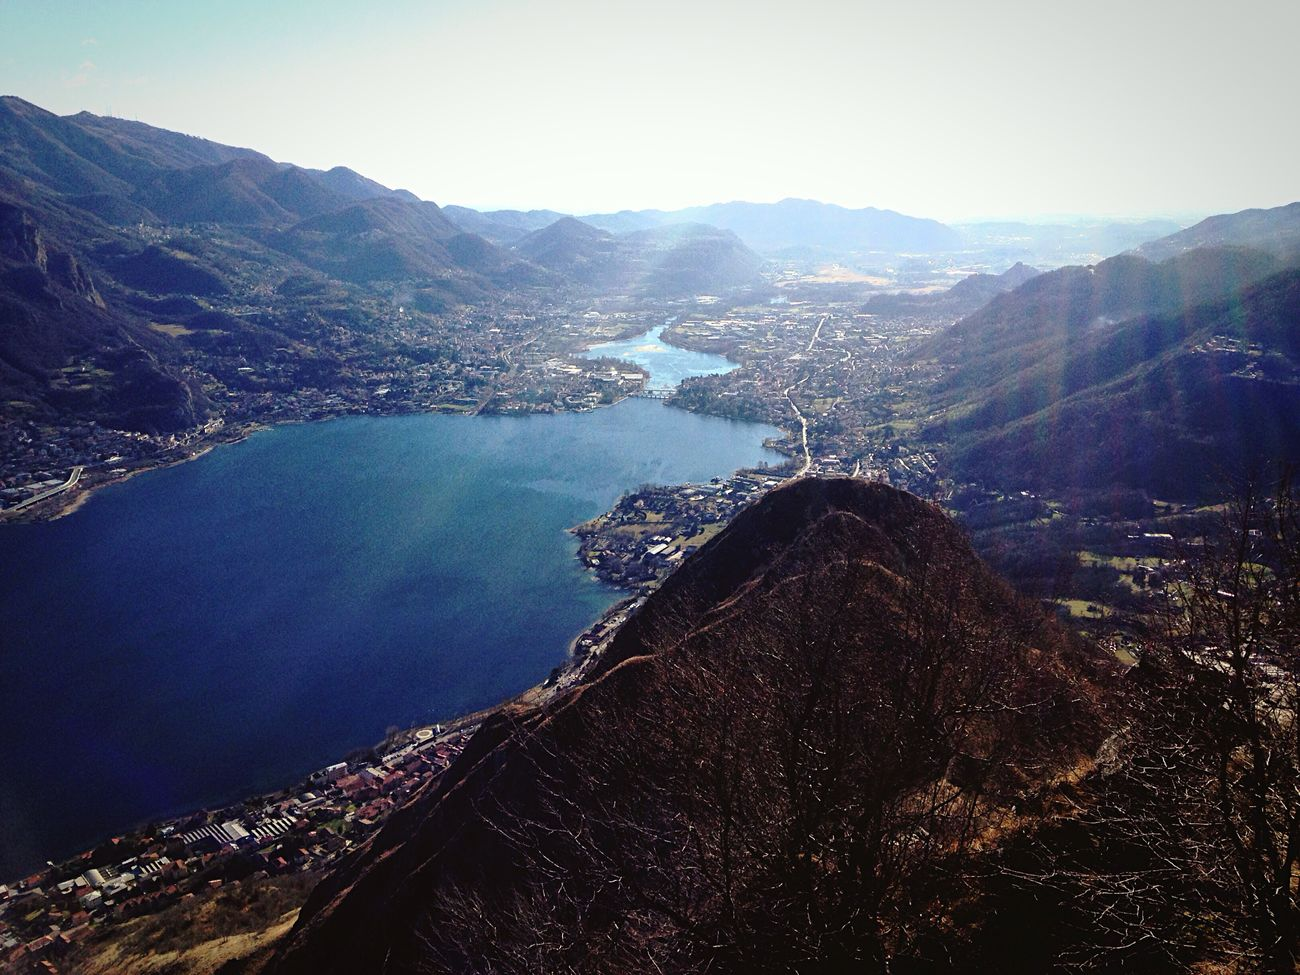 Lake Lago Lagodigarlate Garlatelake Monte Montebarro Camminata Domenica Amici Friends Mountain Sun Sereno